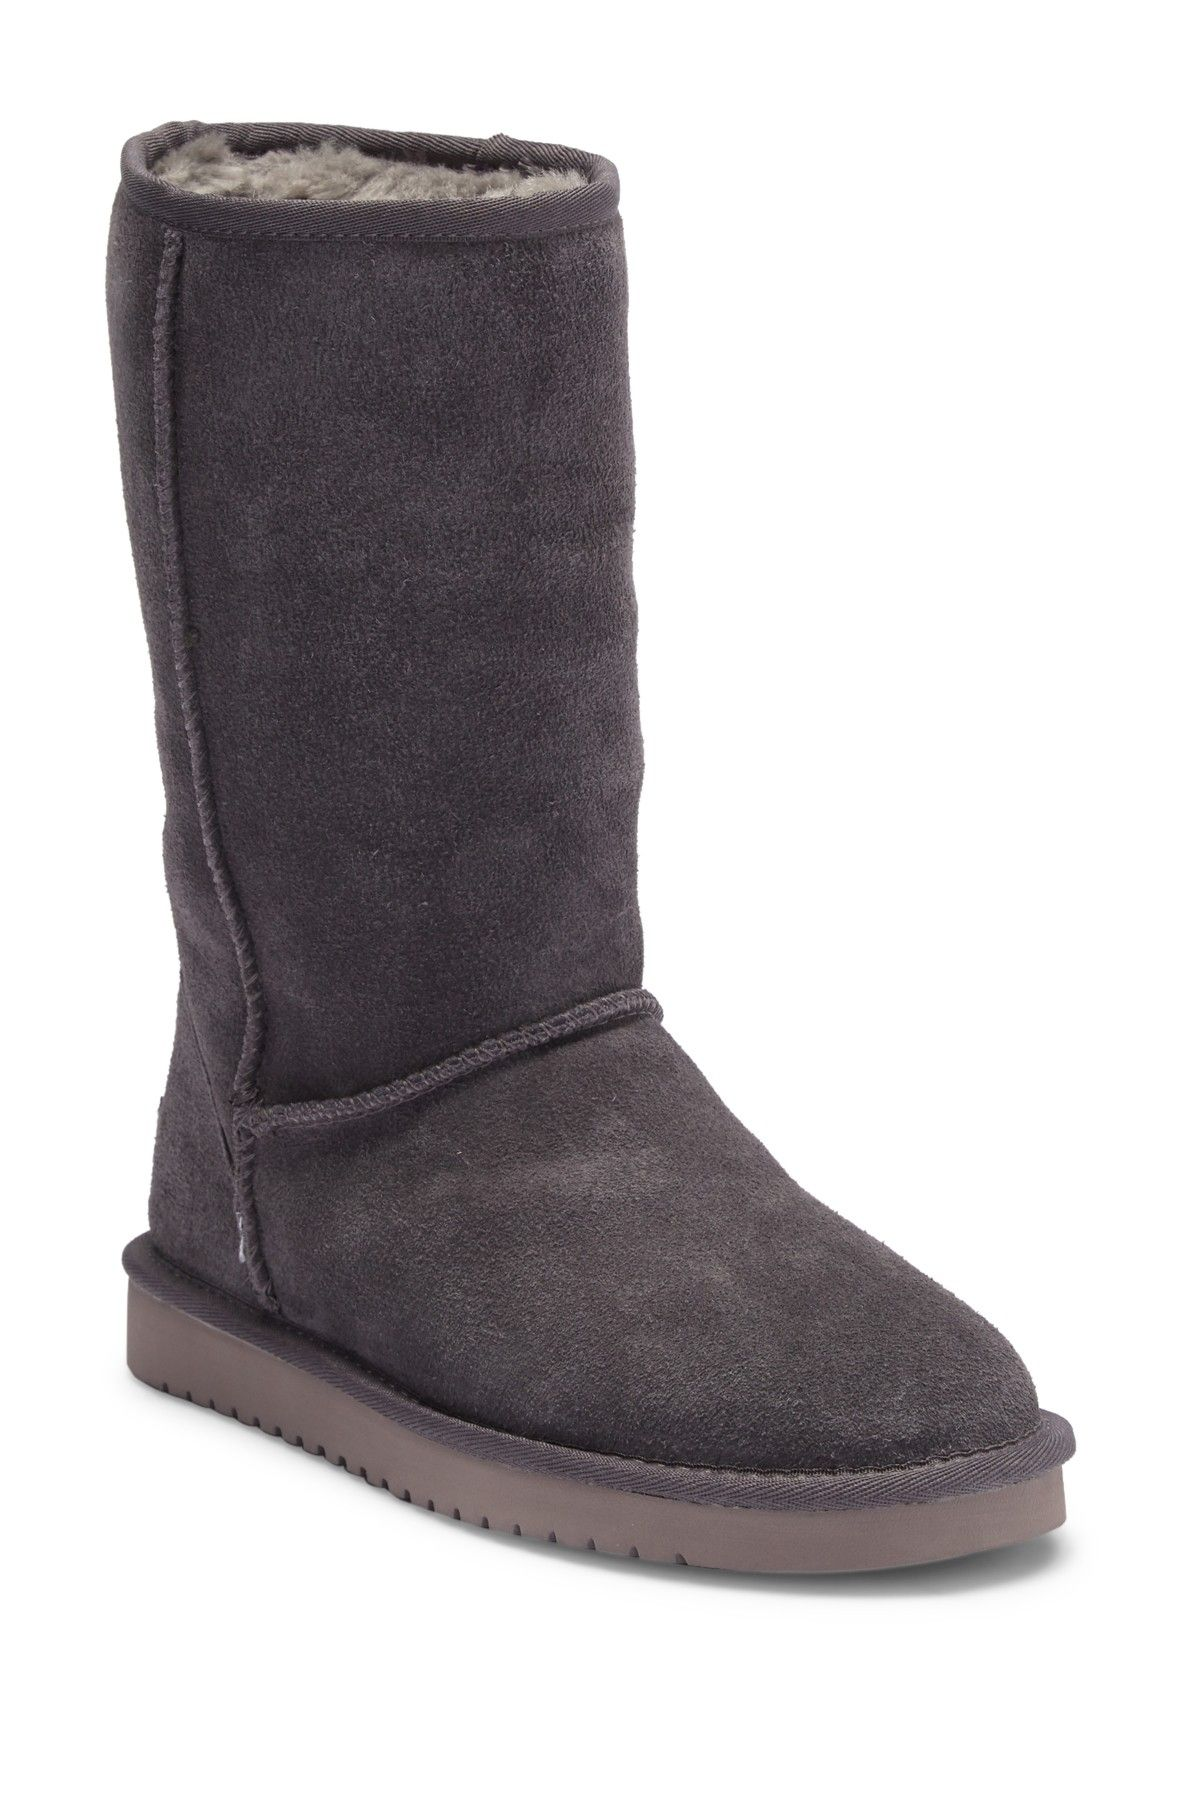 a011fee904e Classic Genuine Shearling & Faux Fur Lined Tall Boot in 2019 ...